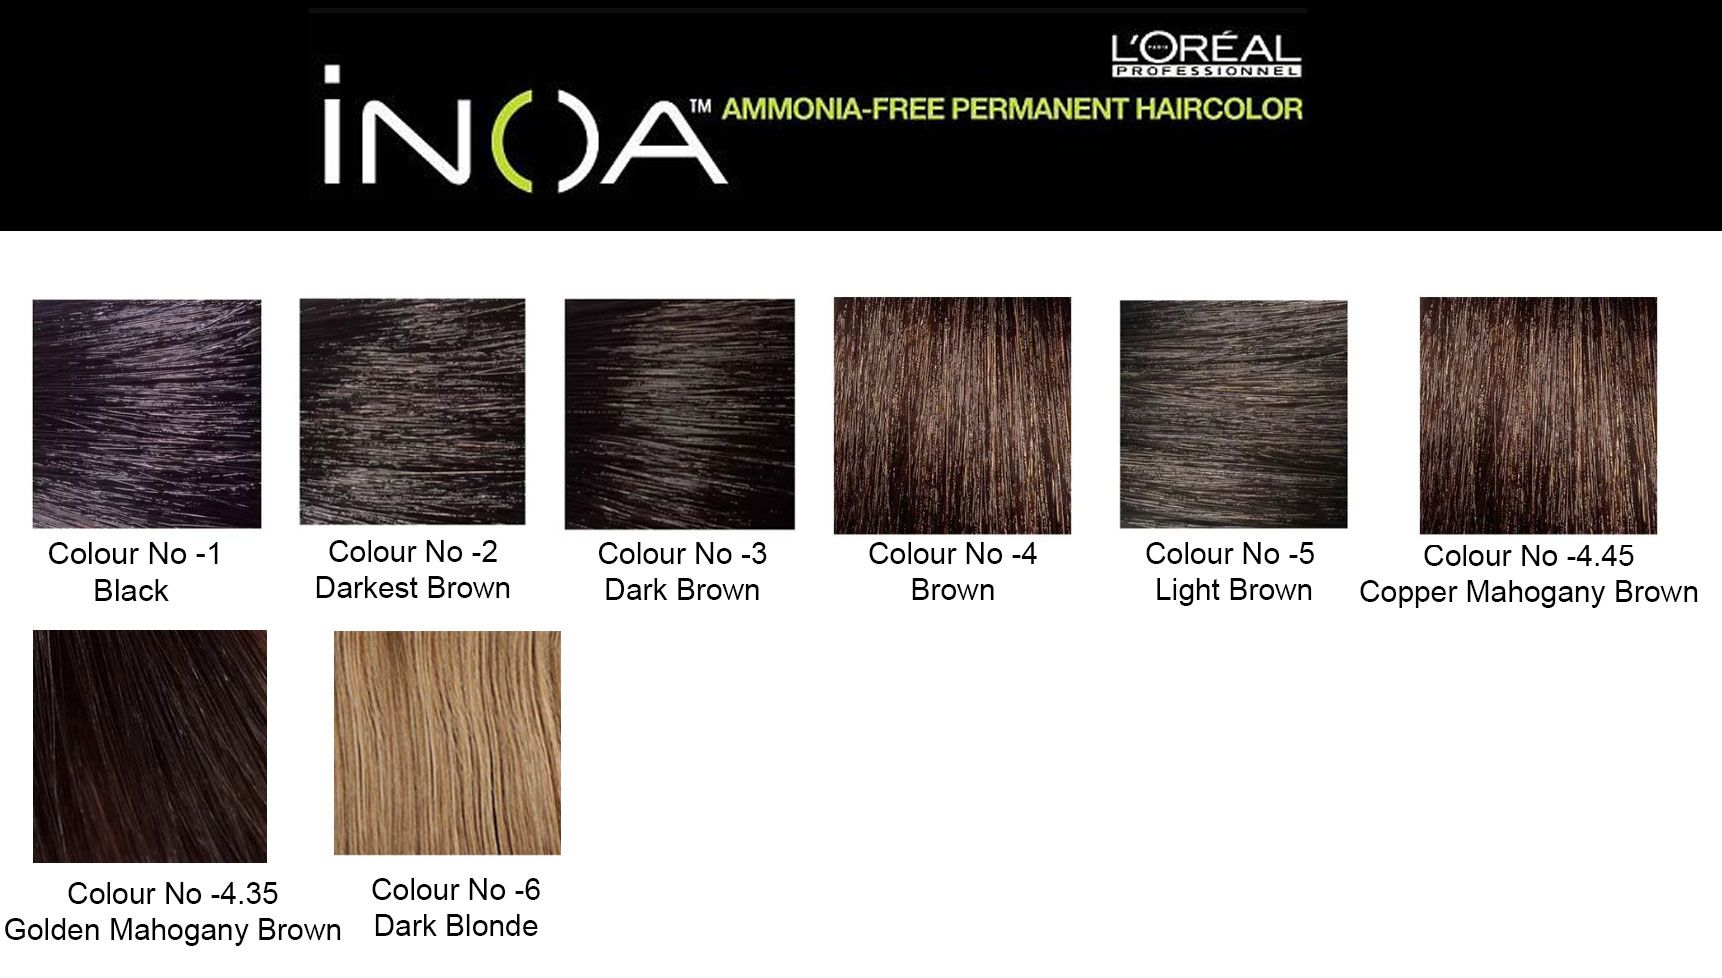 L Oreal Professionnel Inoa Hair Colour No 4 35 Golden Mahogany Brown 60g At Best S In India Hecmo In 2021 Hair Color Chart Hair Color Hair Color Shades